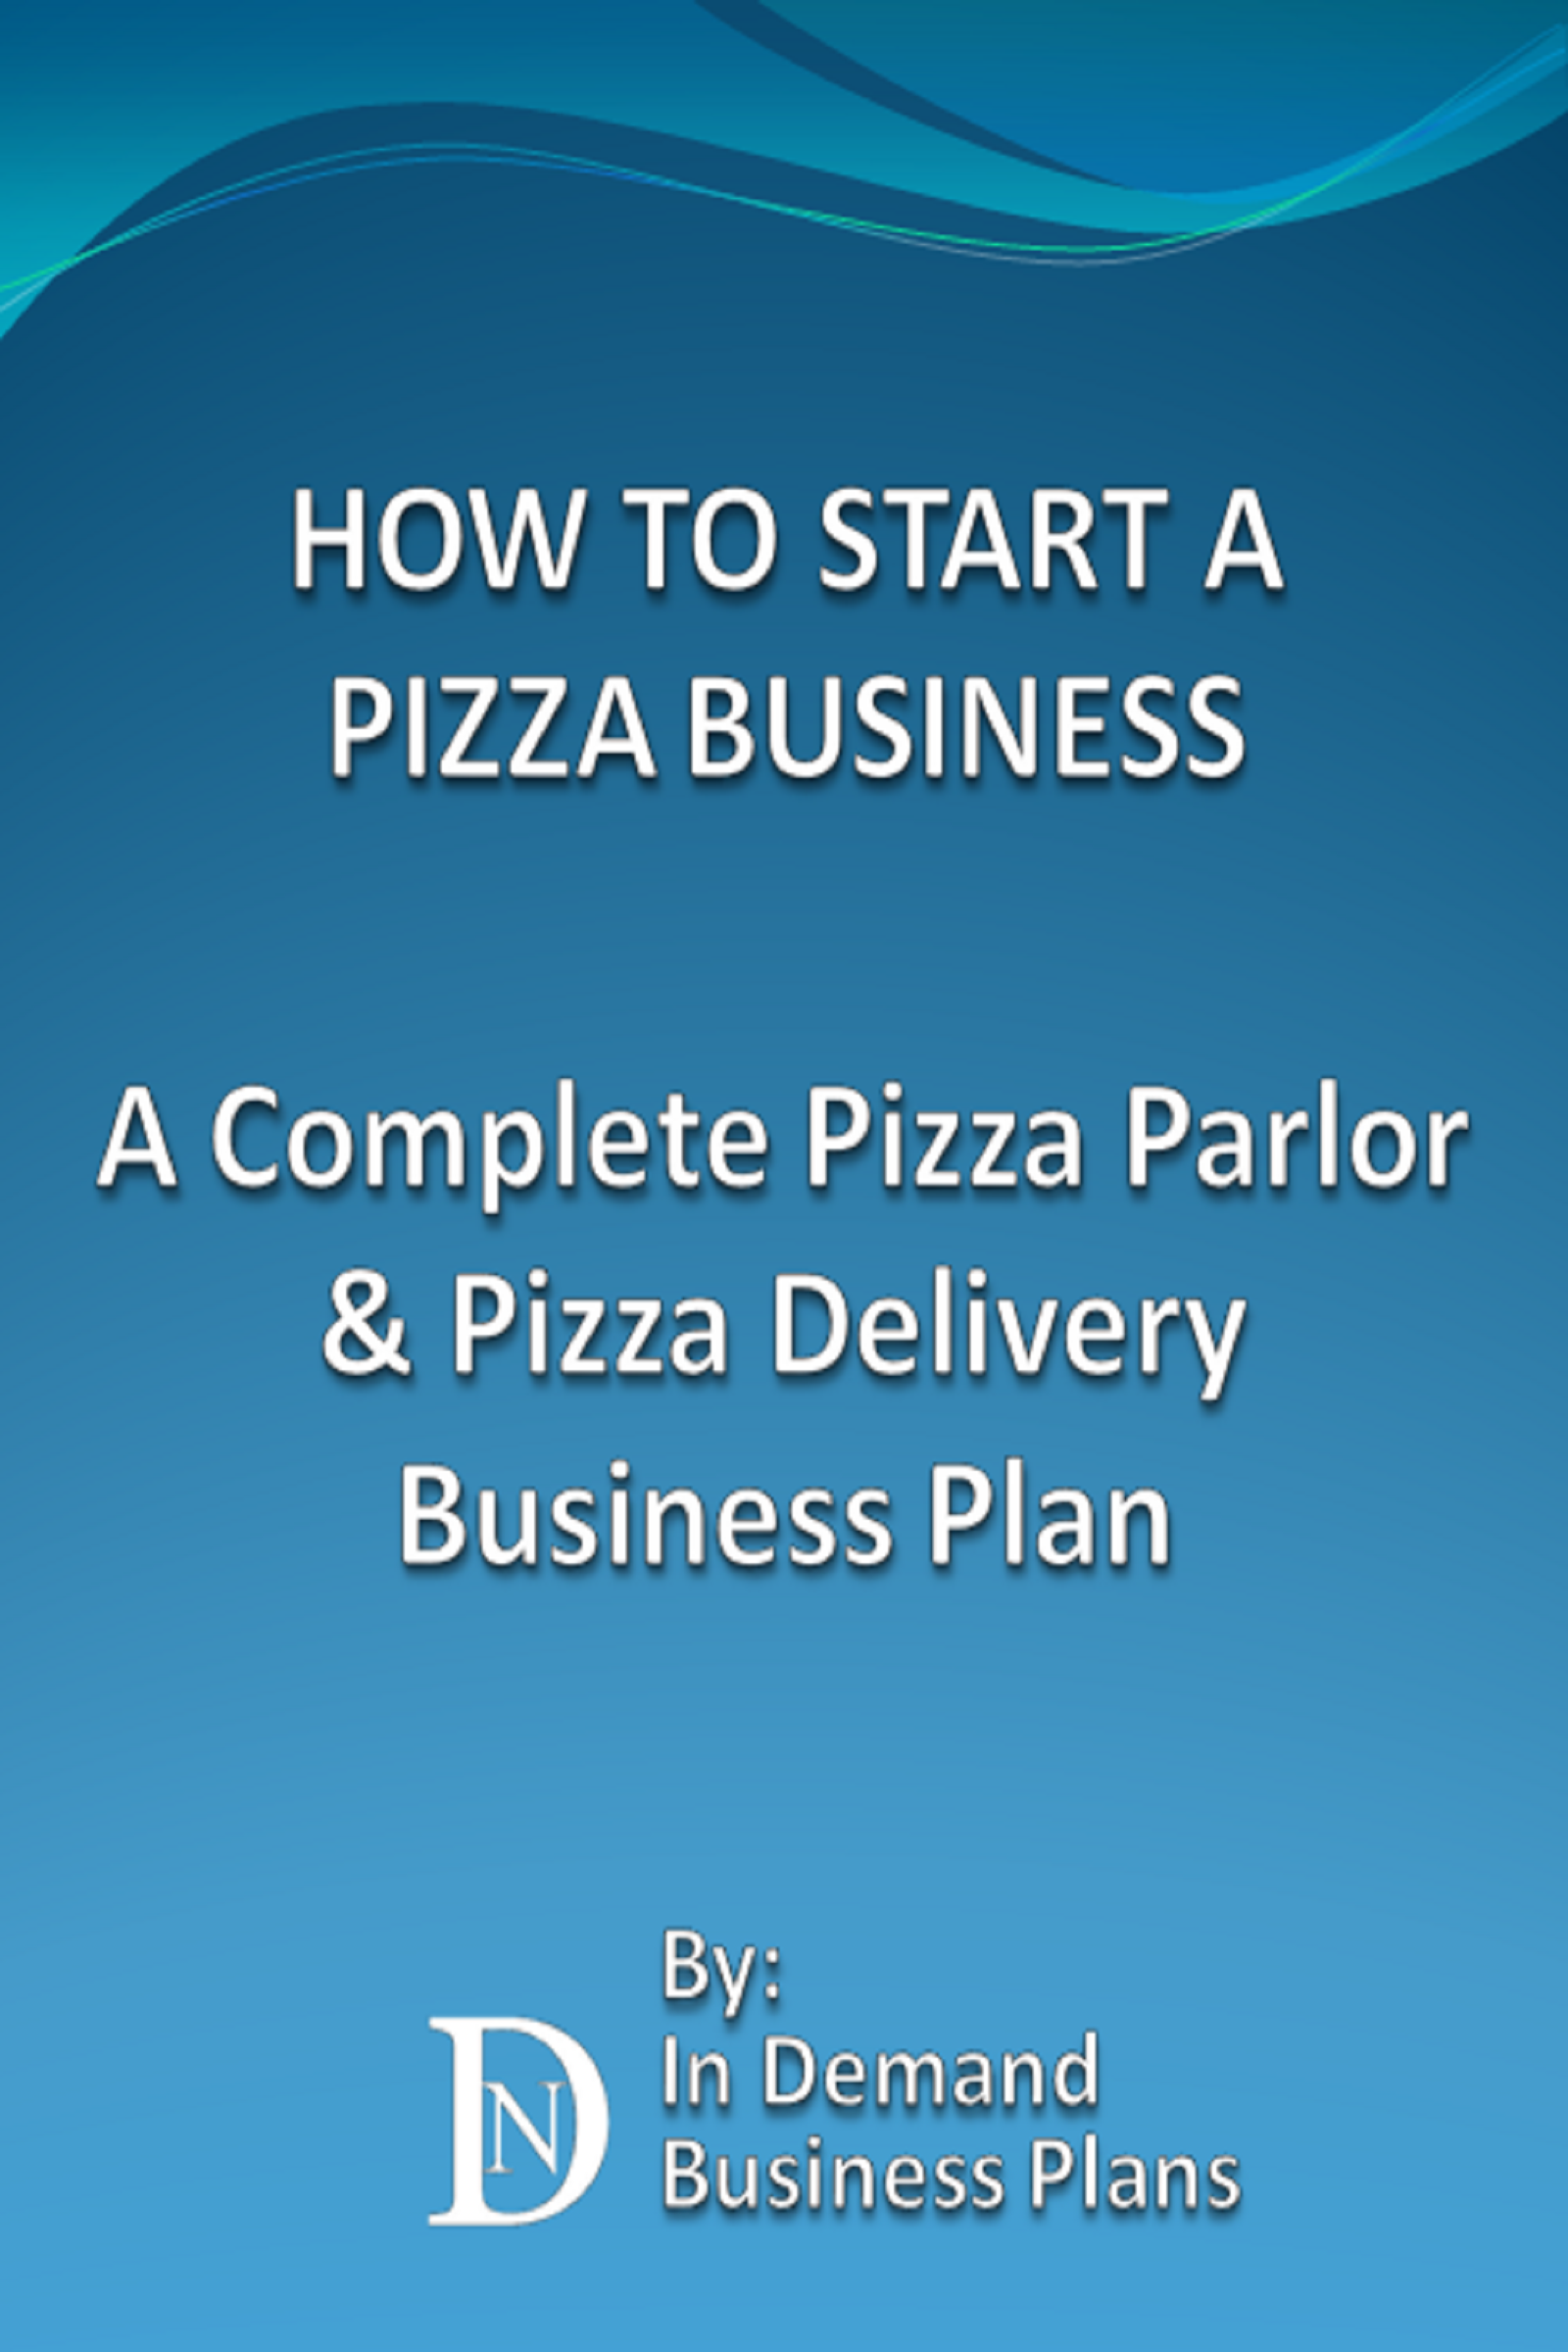 pizza pan business plan essay Essay plan in just 5 minutes the essay plan below is for a hypothetical essay question about the film 'the matrix' and the film's setting.